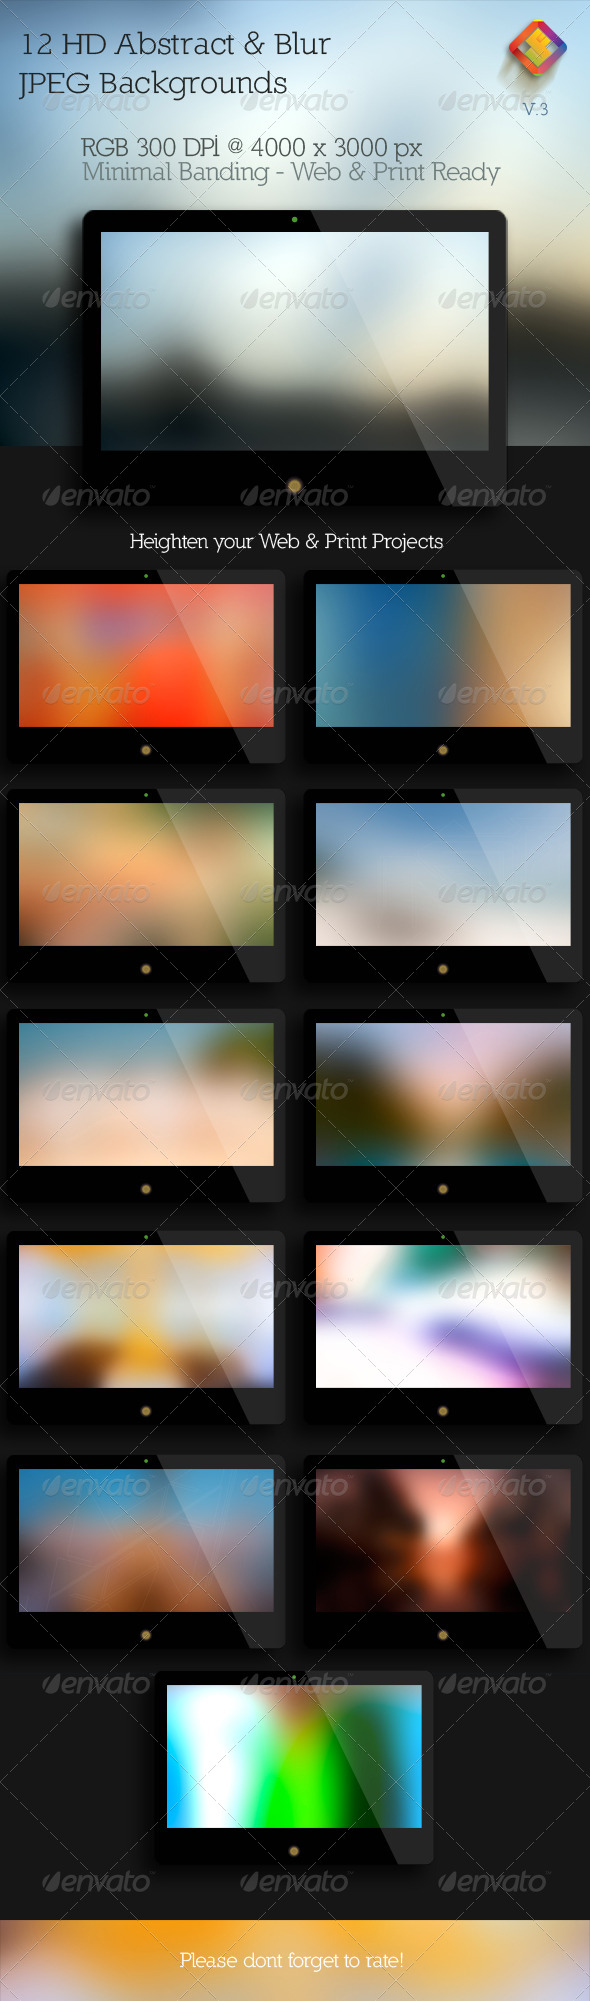 Abstract & Blur Backgrounds V.3 - Abstract Backgrounds